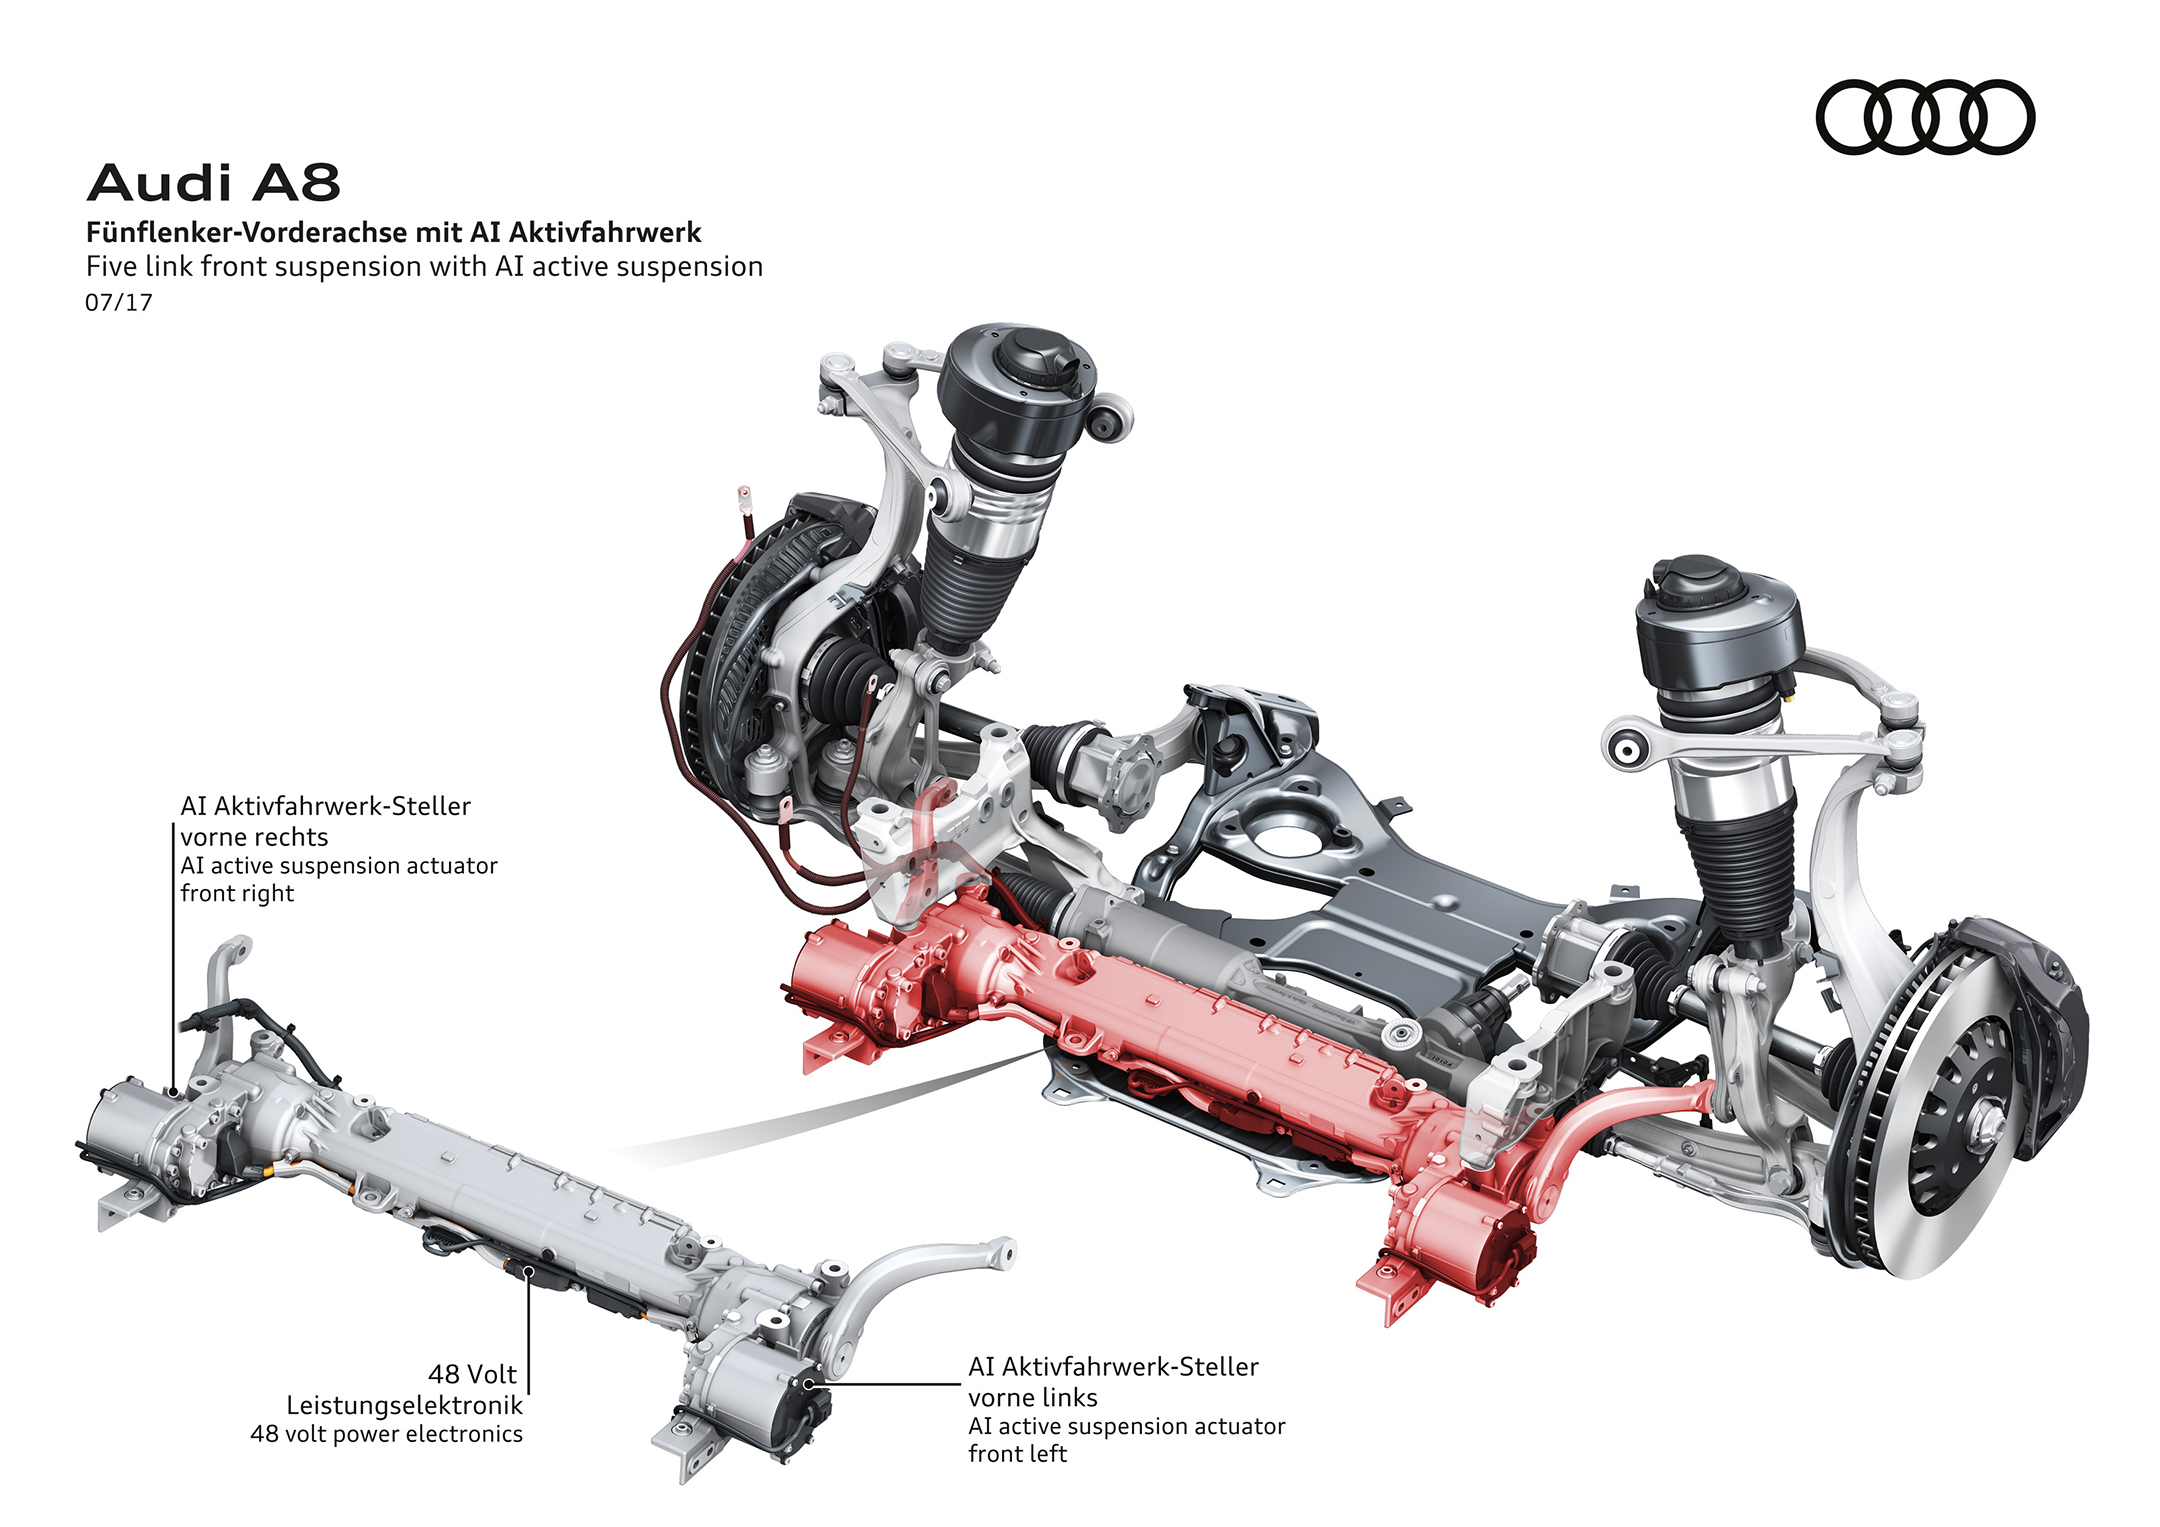 Audi A8 - 2017 - front - Audi AI active suspension